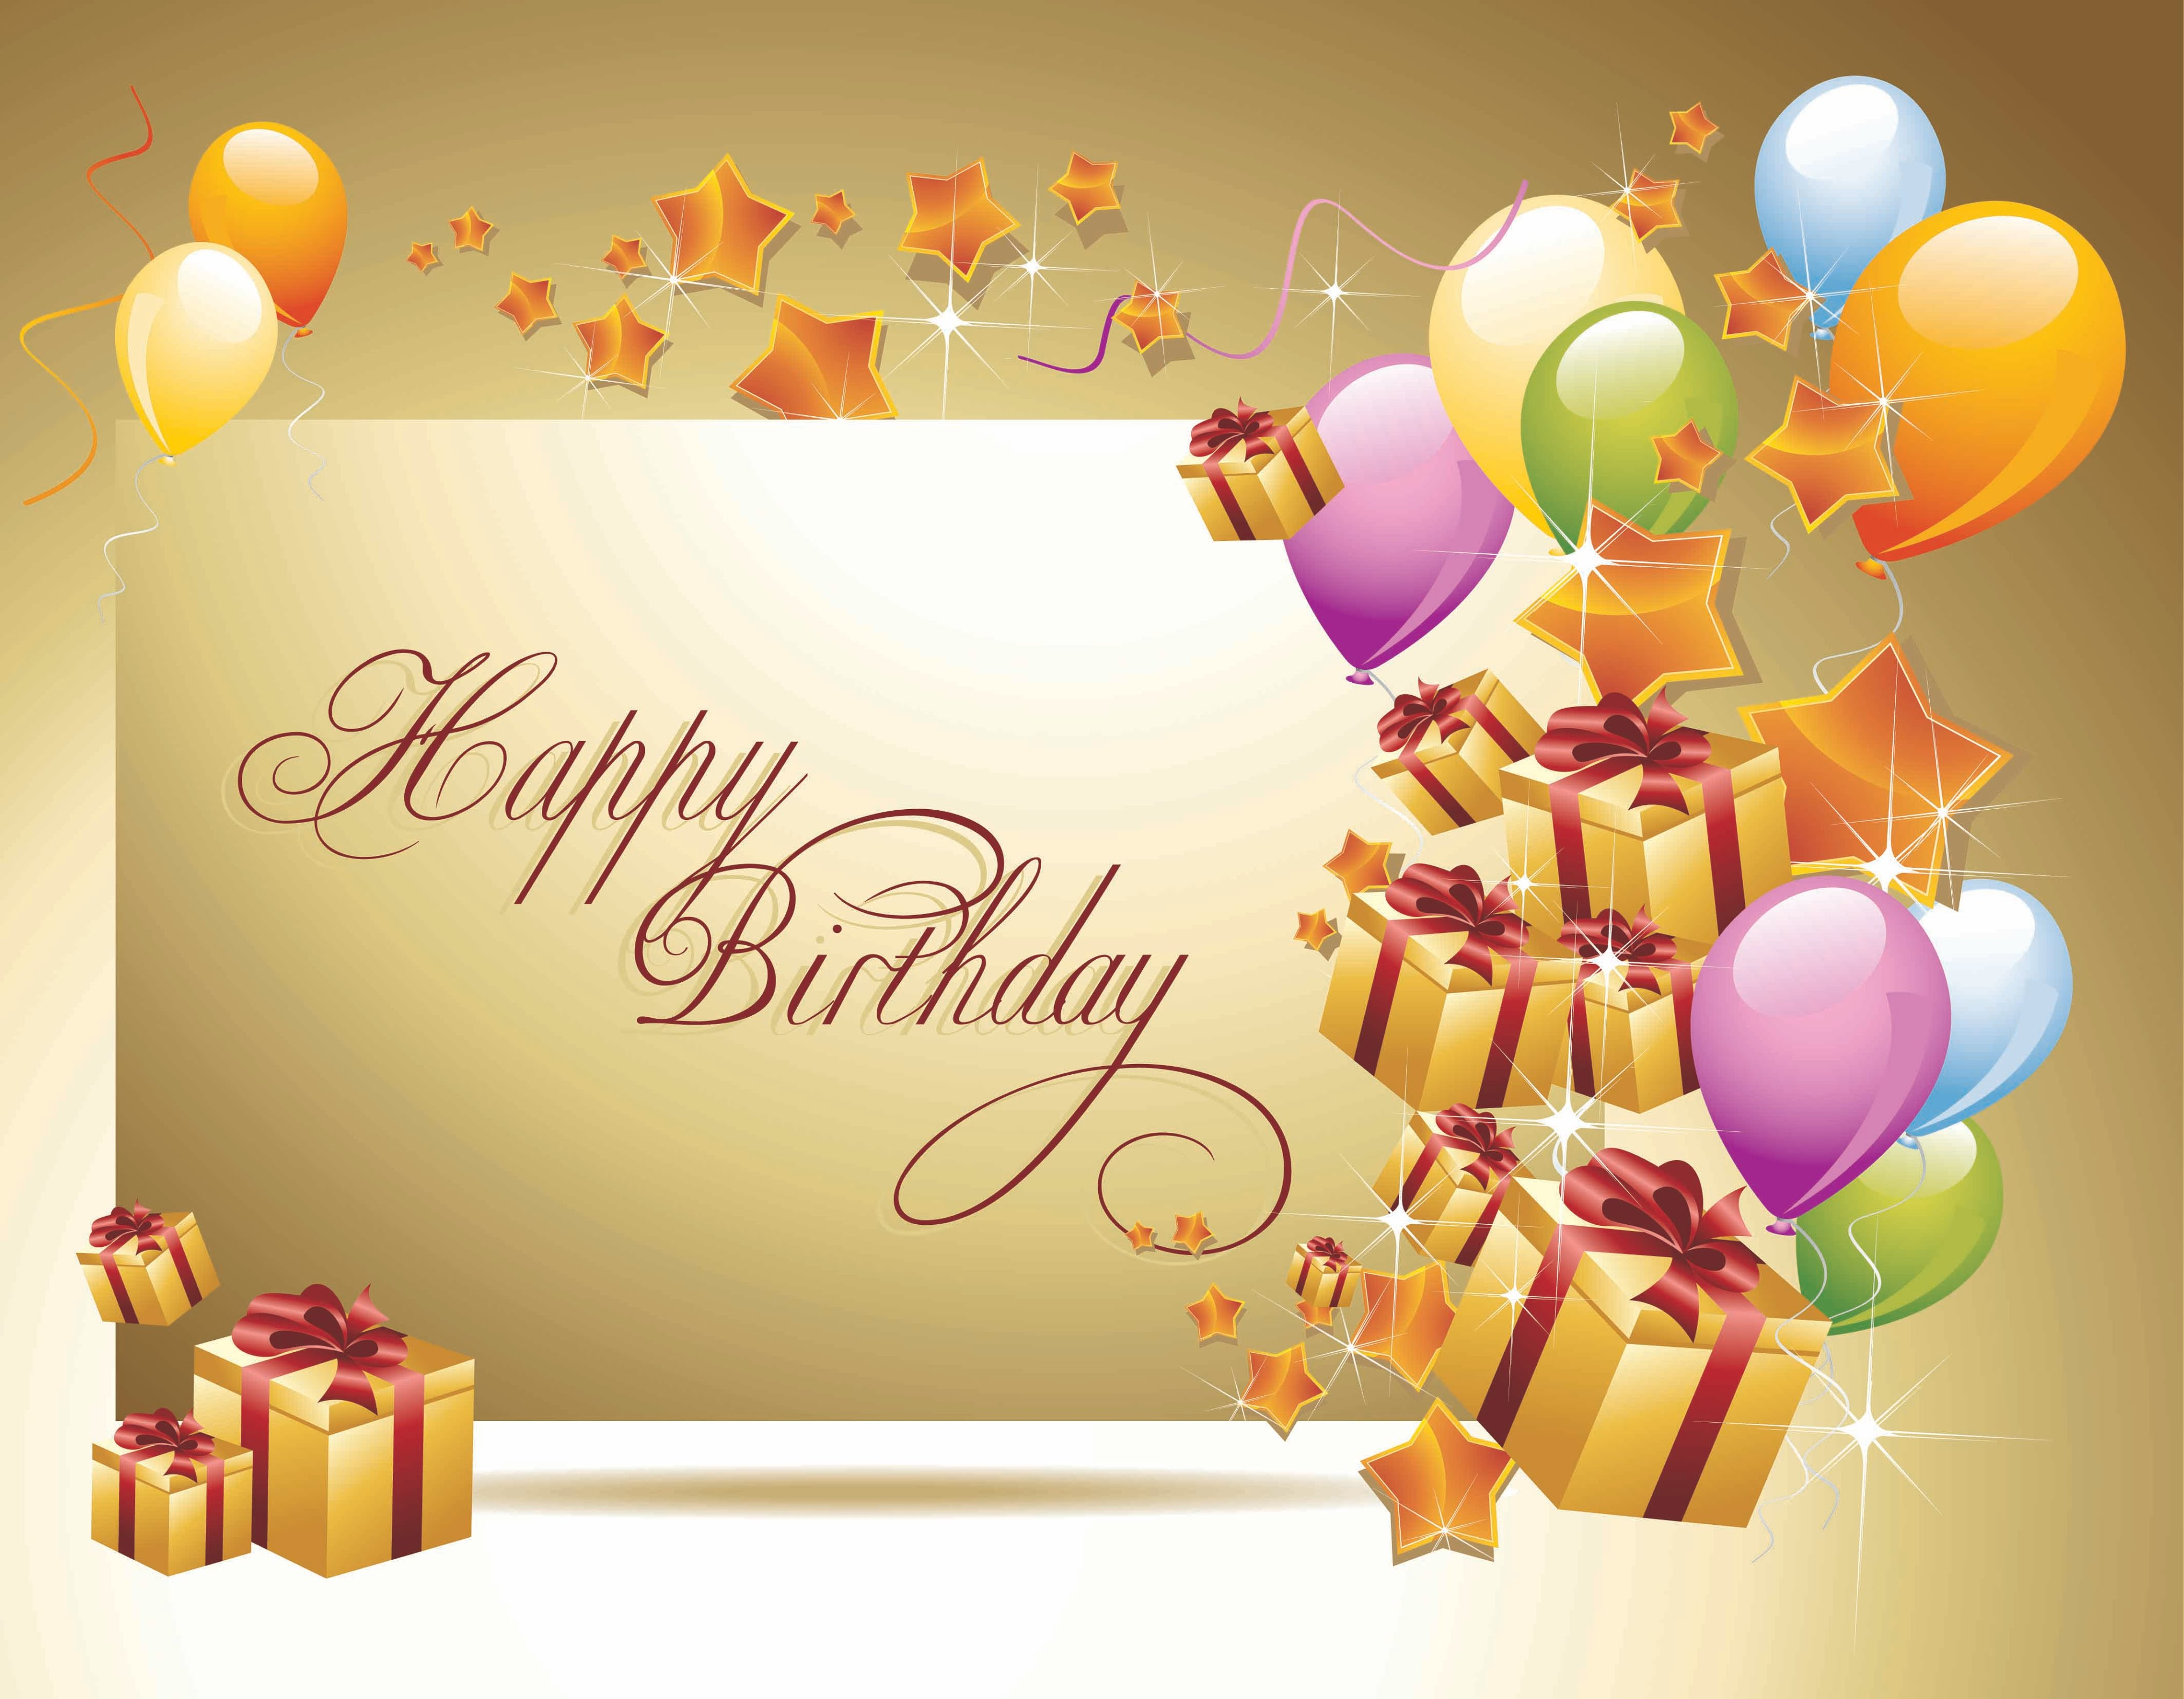 happy birthday wish picture download ; Birthday-Wishes-Greeting-Cards-Free-Download-and-get-inspiration-to-create-the-birthday-Card-design-of-your-dreams-3